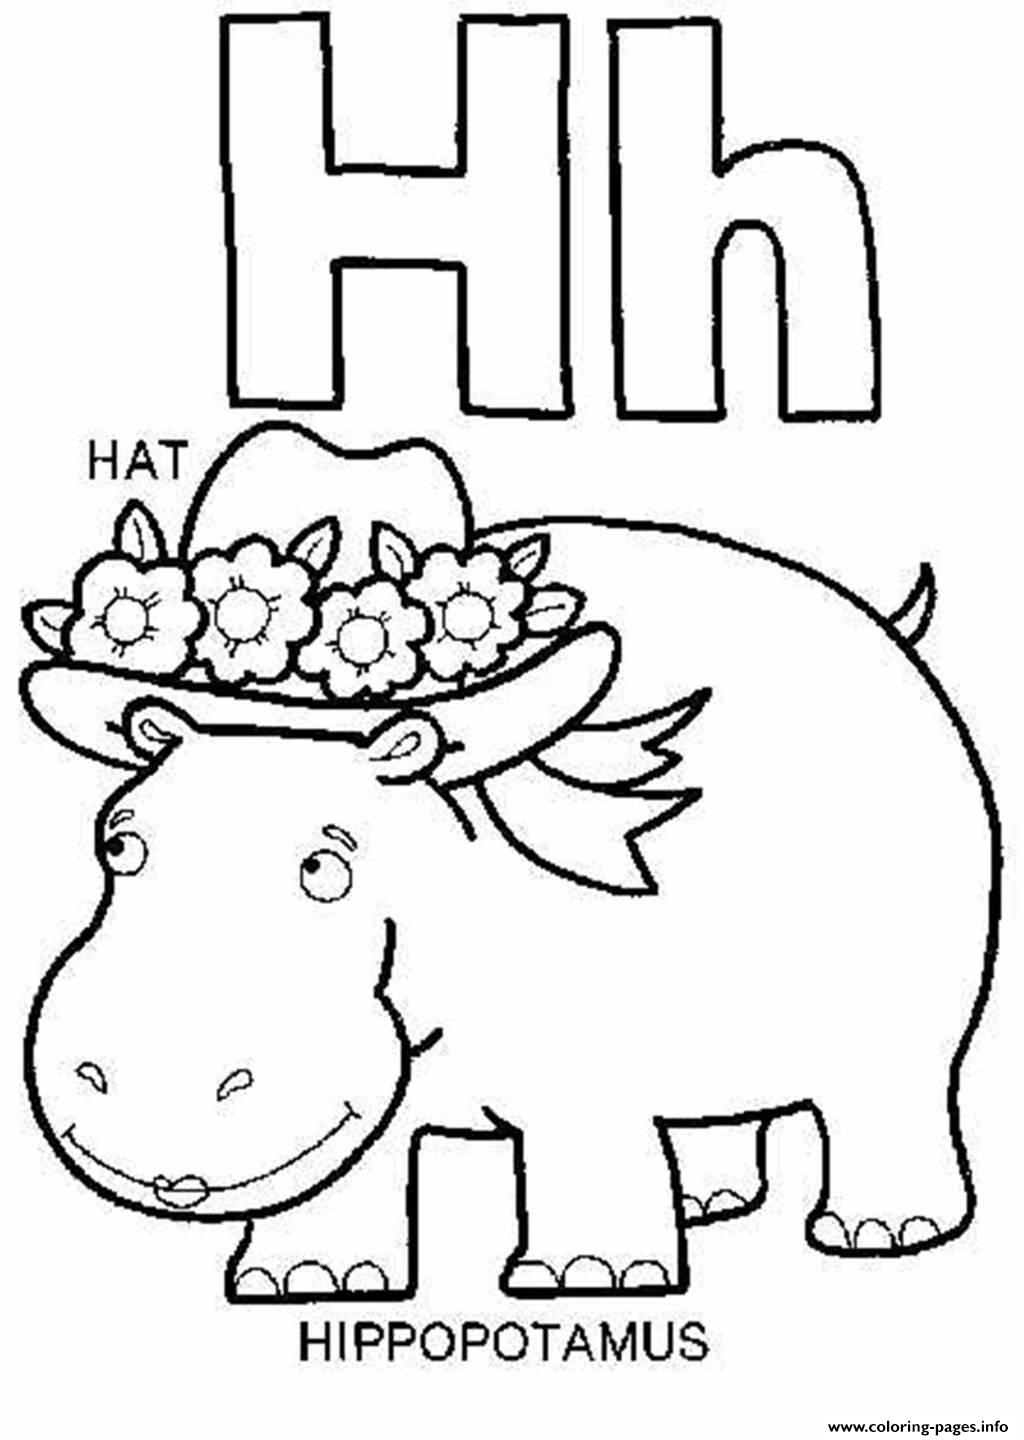 Hippotamus And Hat Alphabet Coloring Pages Printable